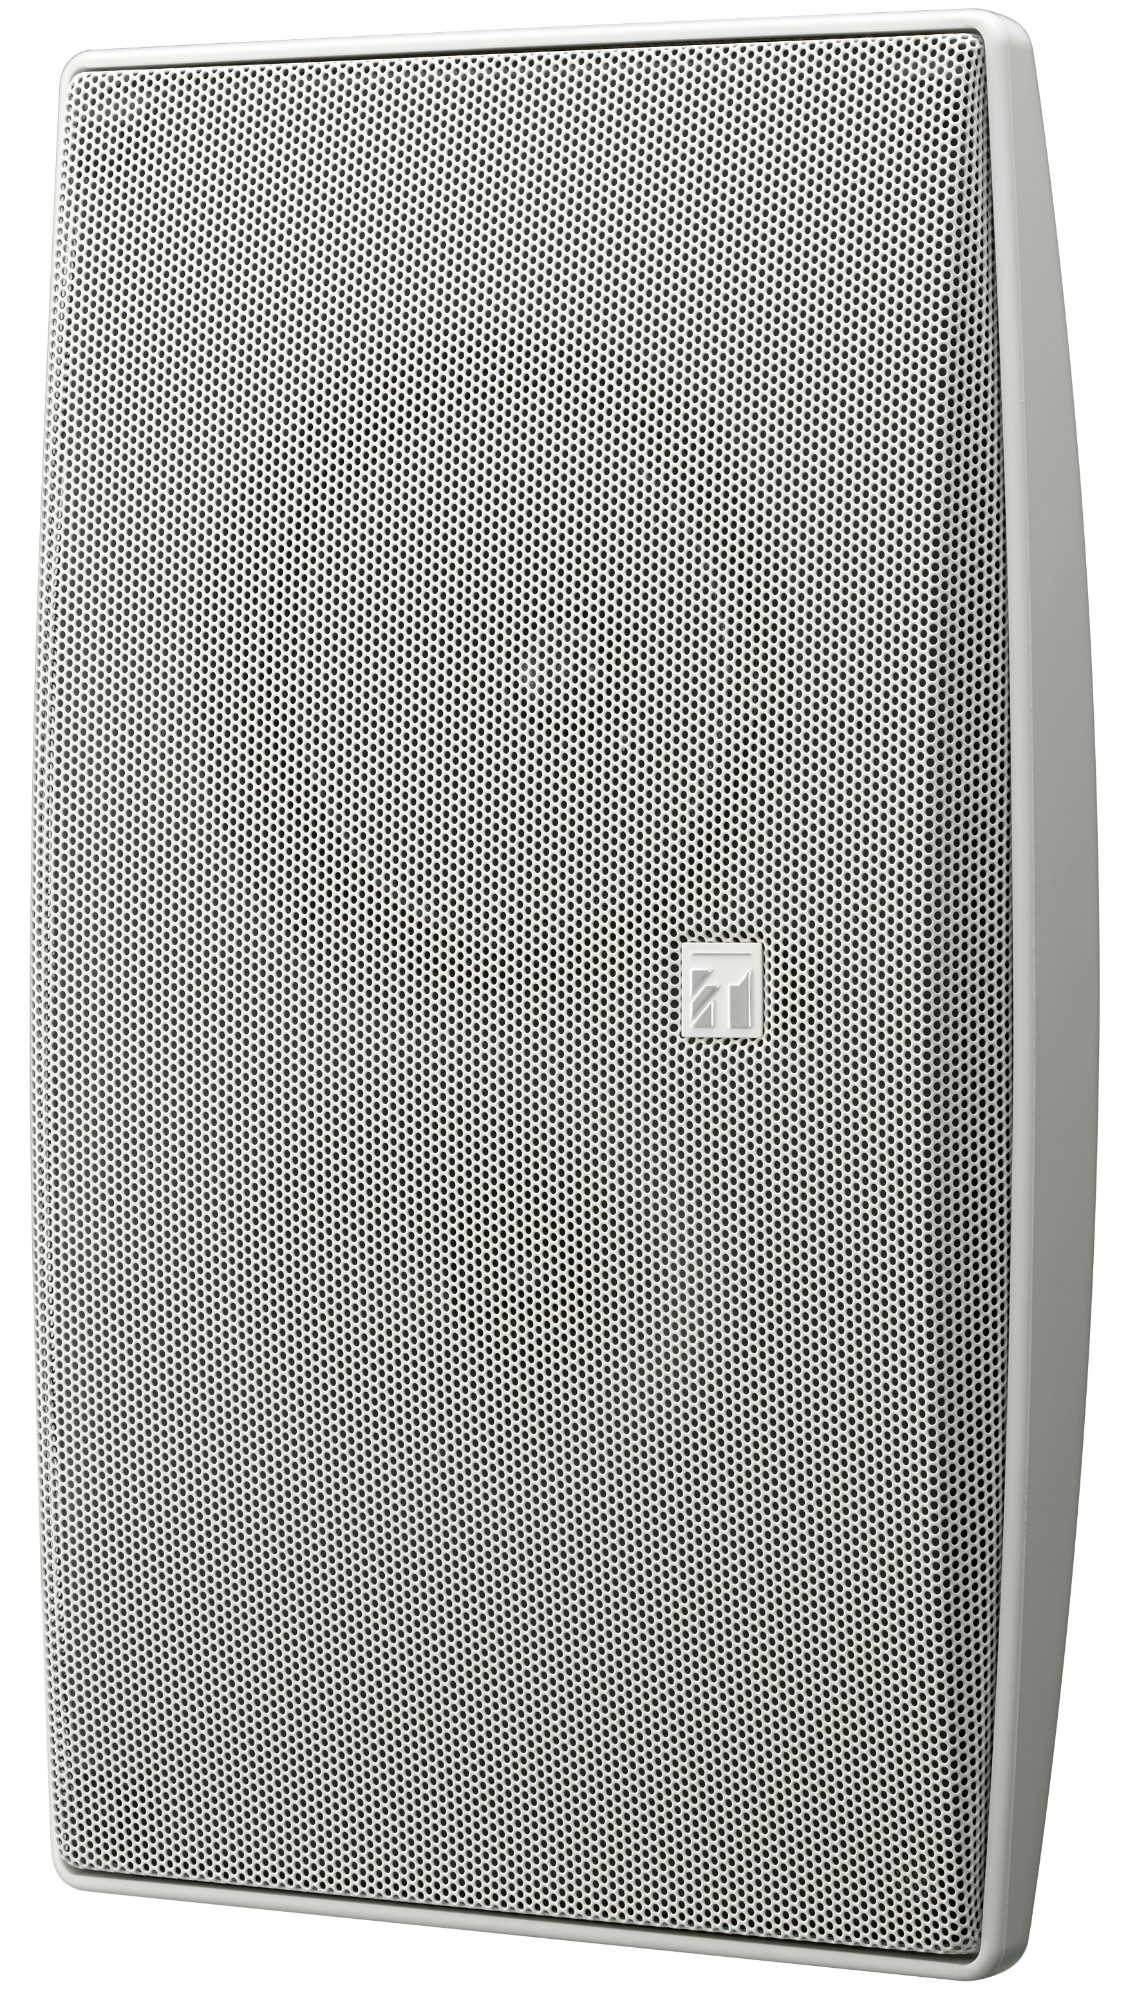 TOA BS-634T loudspeaker 6 W White Wired